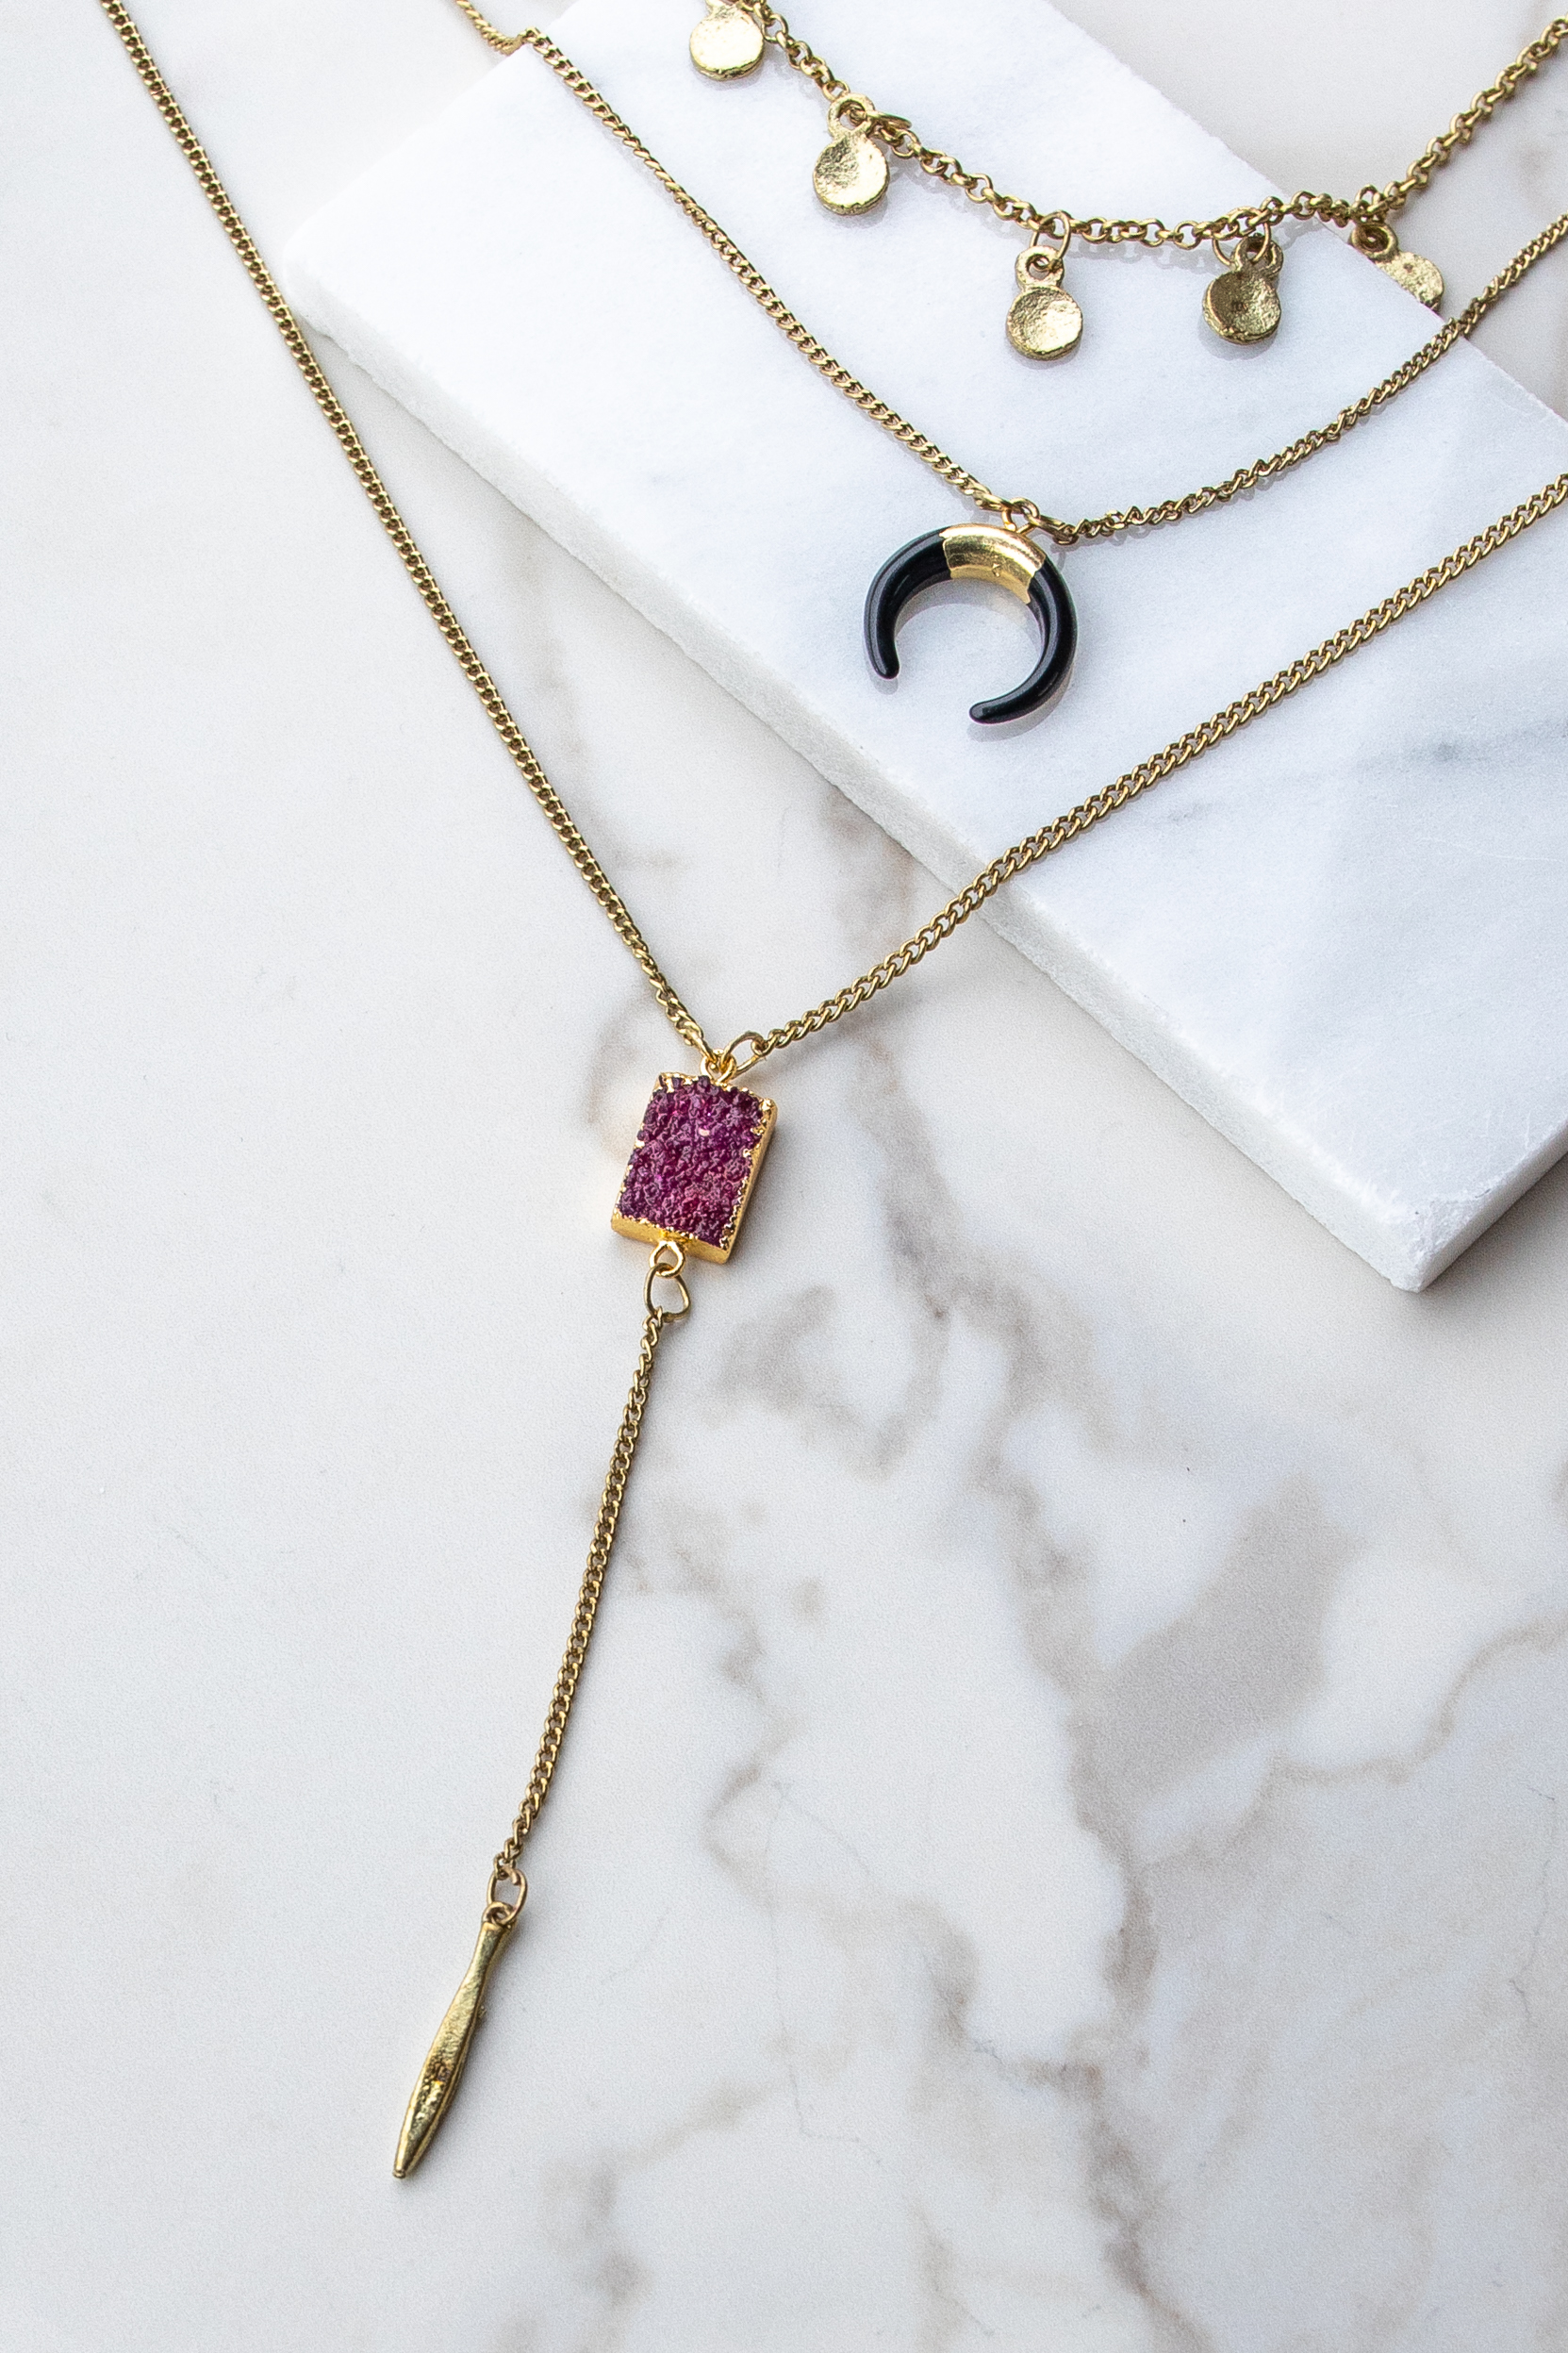 Gold Tiered Necklace with Crescent Pendant and Druzy Stone